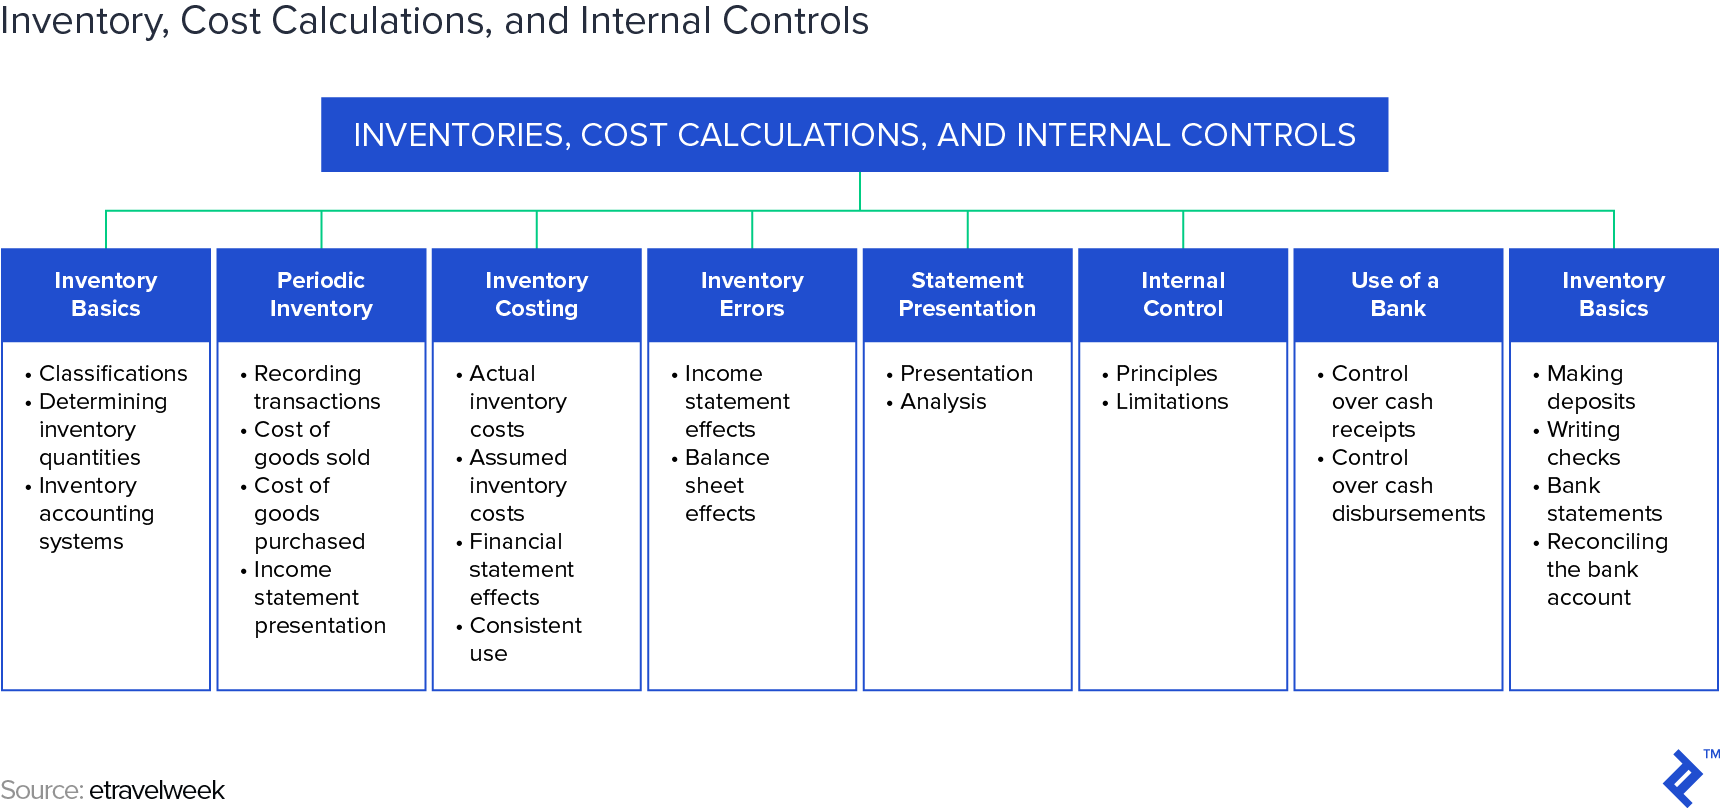 Inventory, Cost Calculations, and Internal Controls - Source: etravelweek